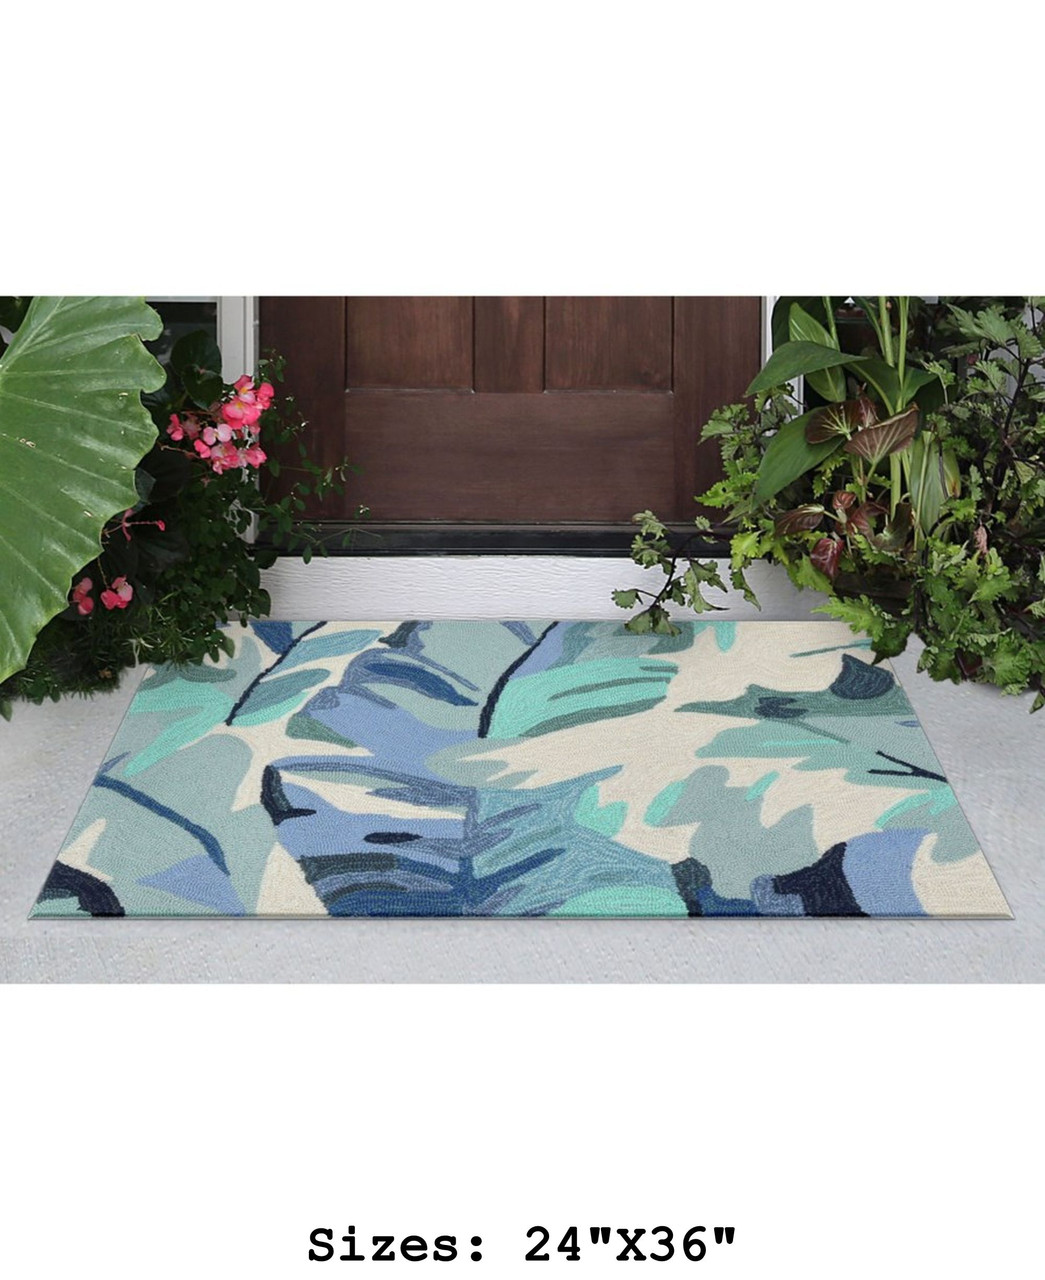 Blue Capri Palm Leaf Indoor/Outdoor Rug - Small Rectangle Lifestyle